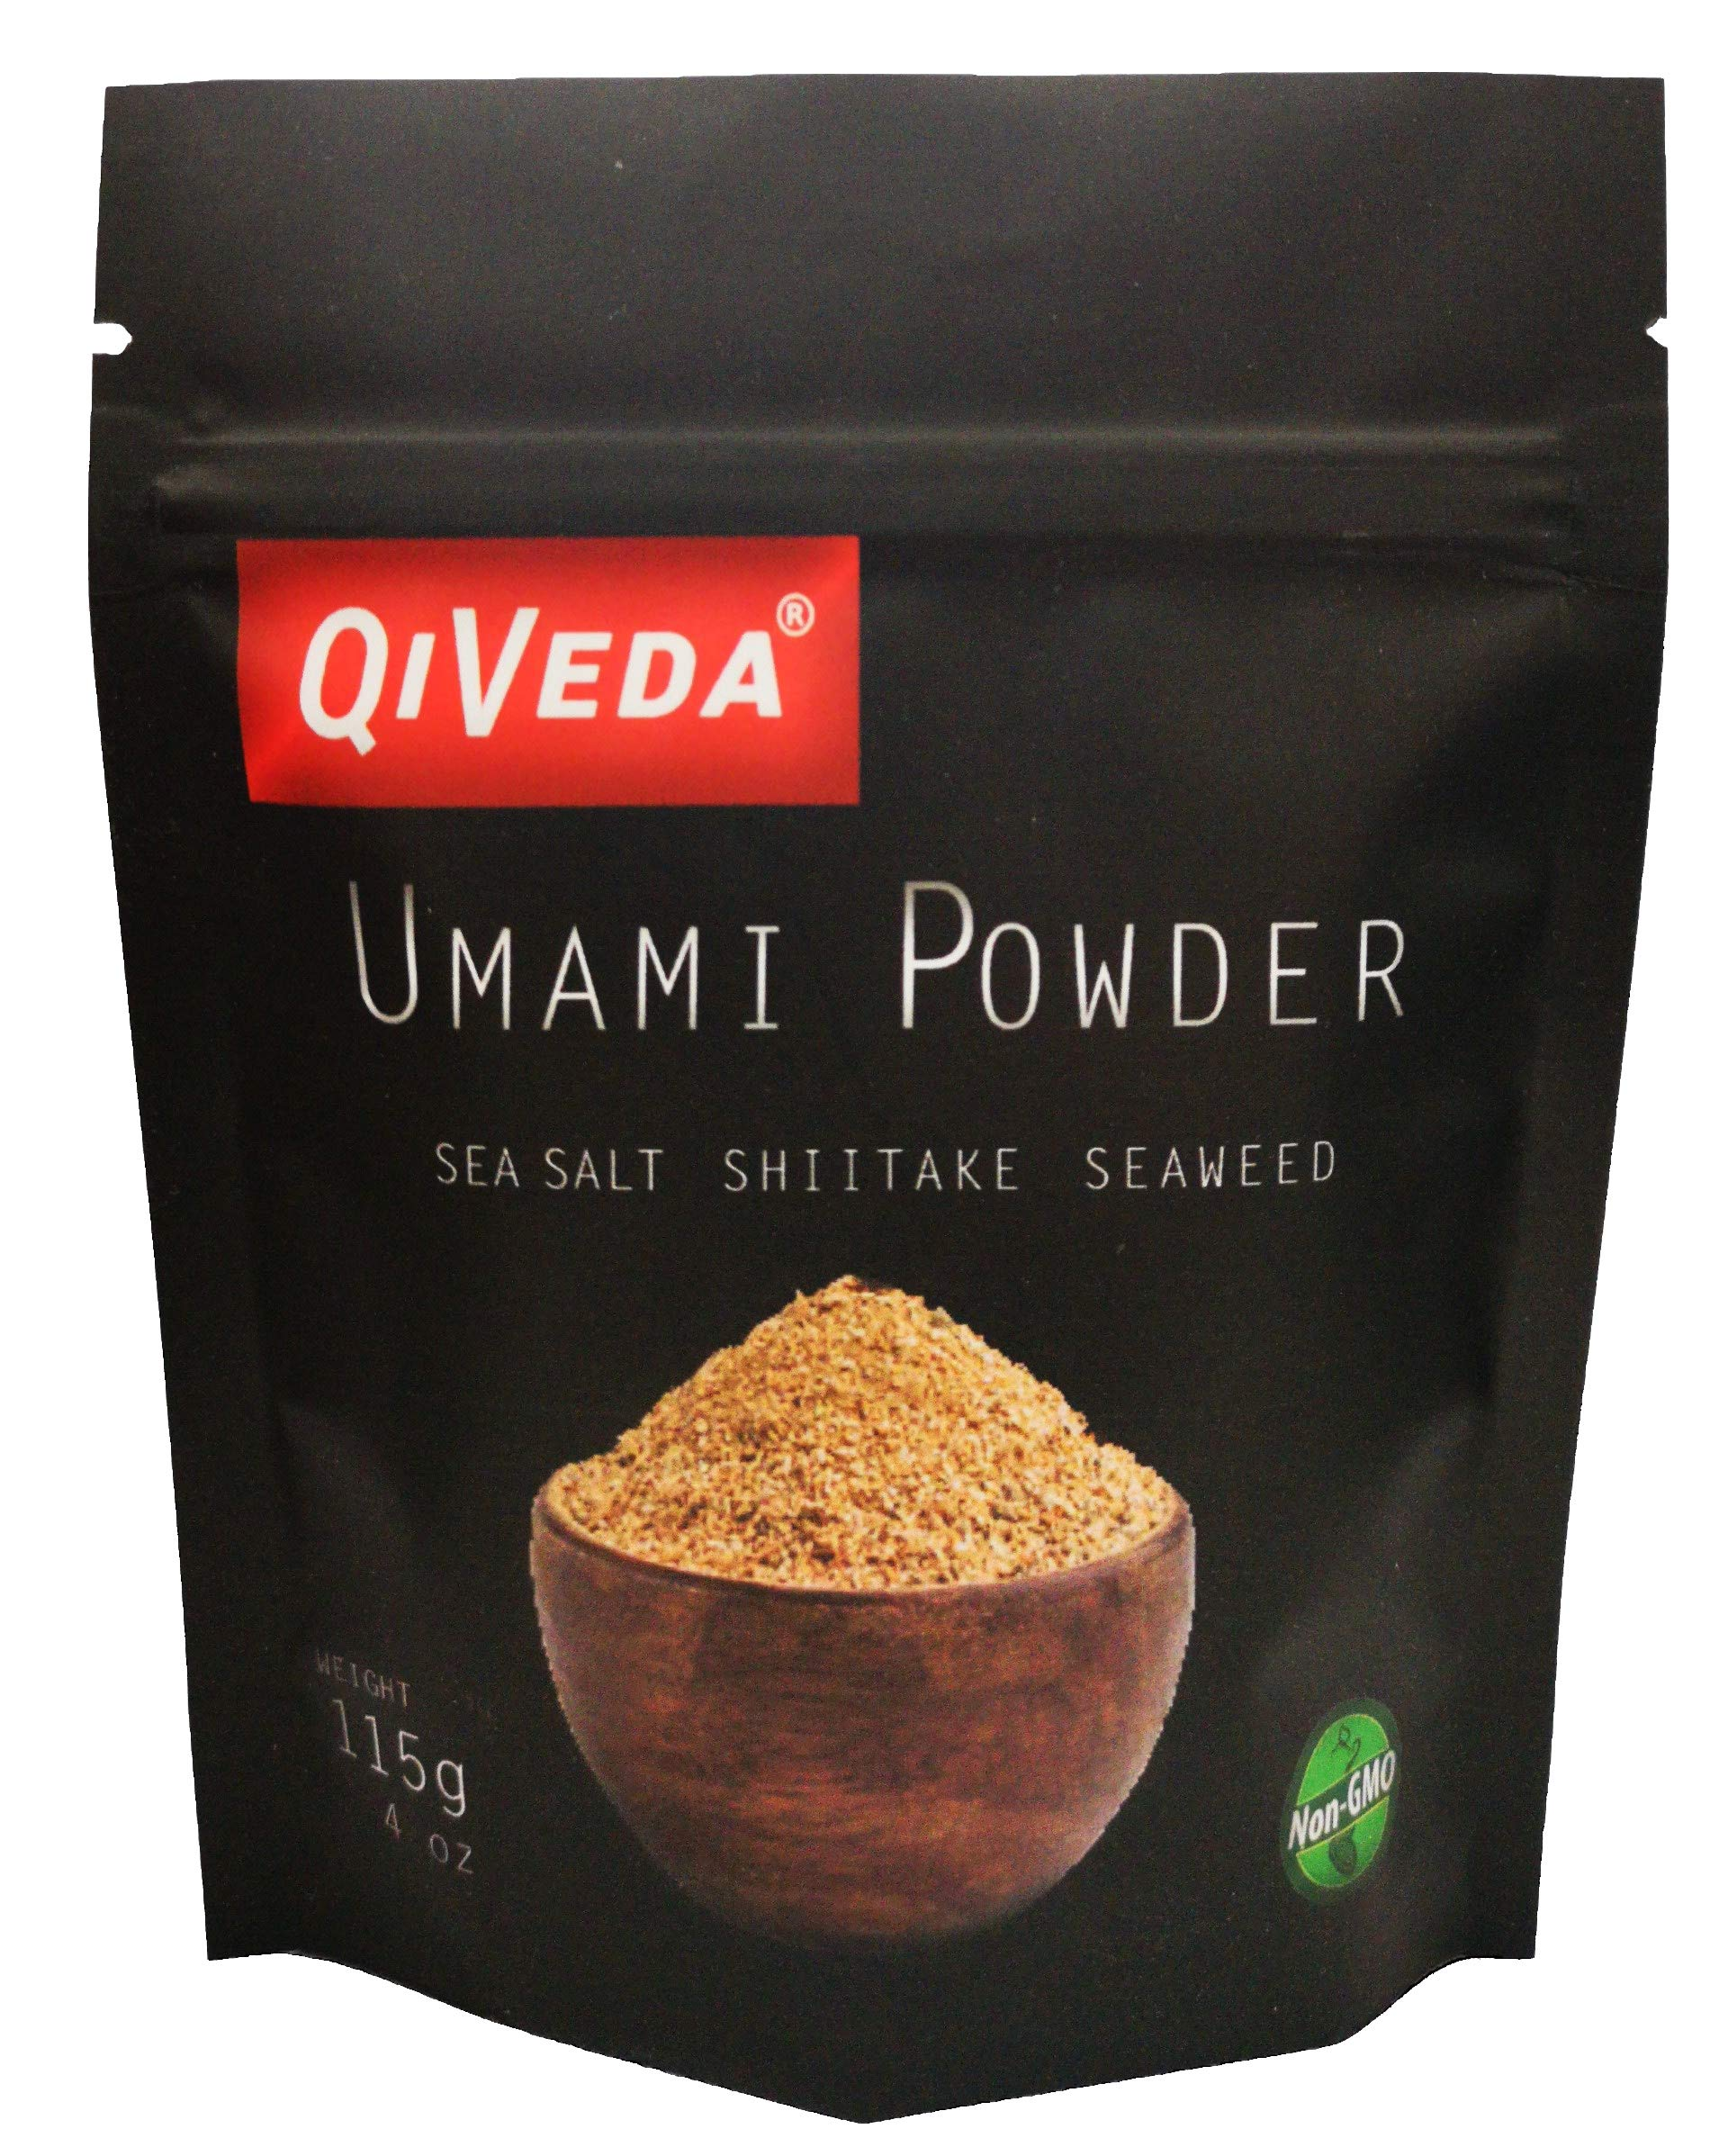 Qiveda Umami Powder Sea Salt Shiitake Buy Online In Belize At Desertcart